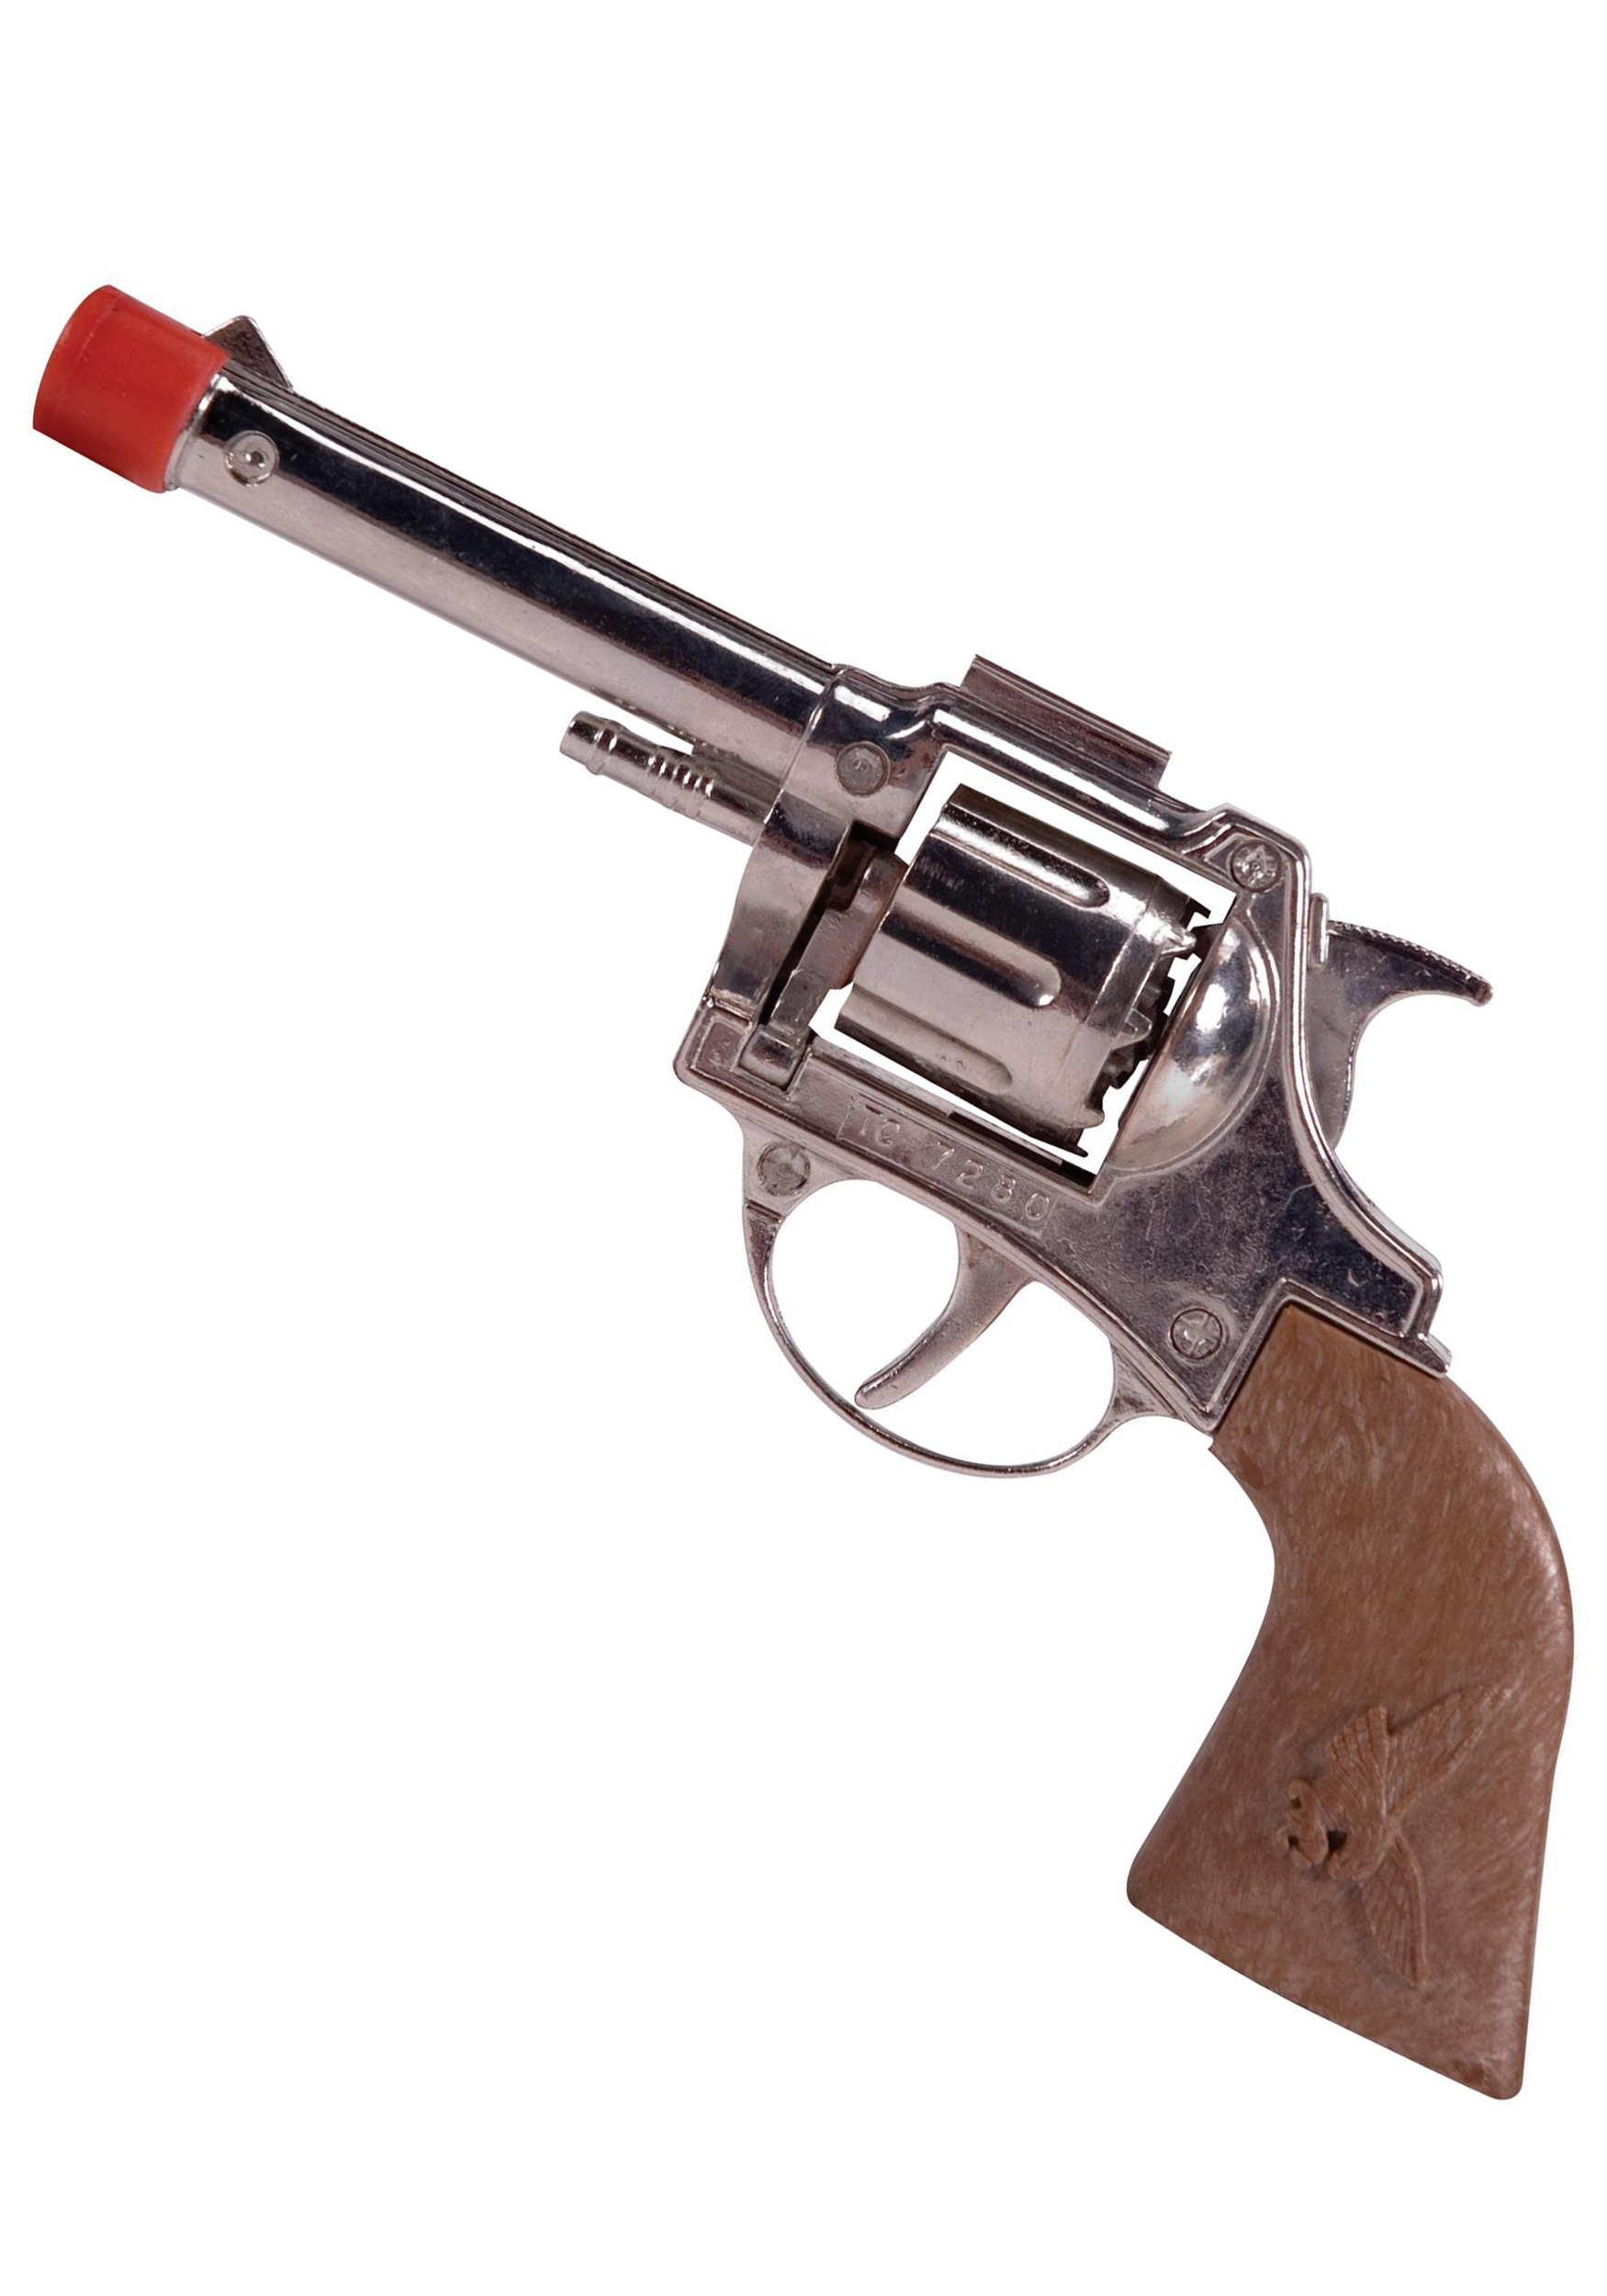 INOpets.com Anything for Pets Parents & Their Pets Die Cast Cap Gun